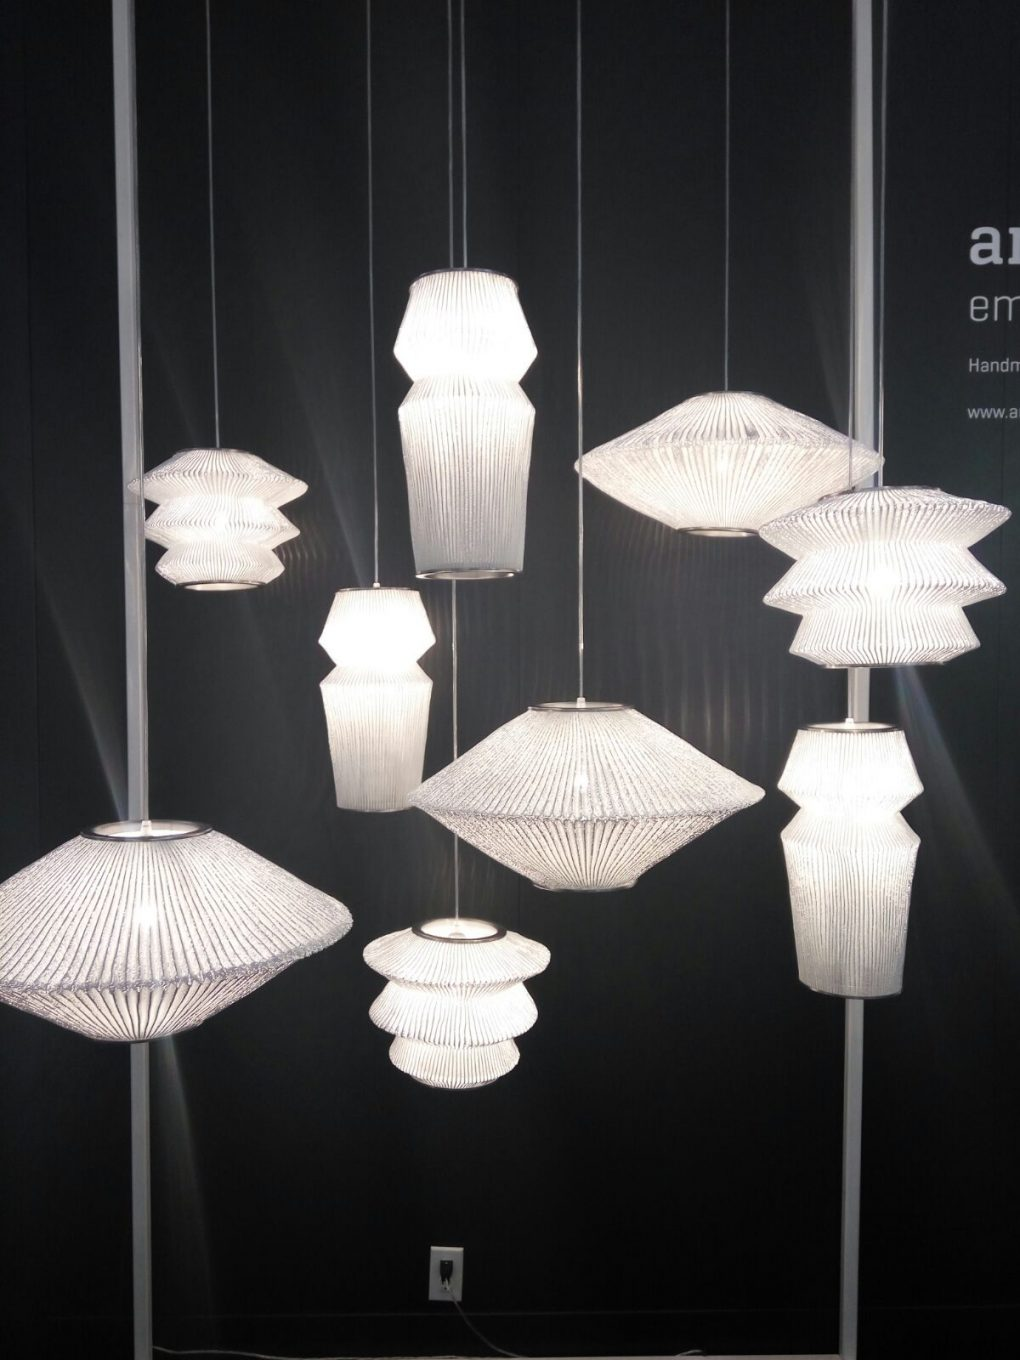 Trend alert discover the best lighting brands at icff 2017 trend alert discover the best lighting brands at icff 2017 4 lighting brands trend alert aloadofball Images